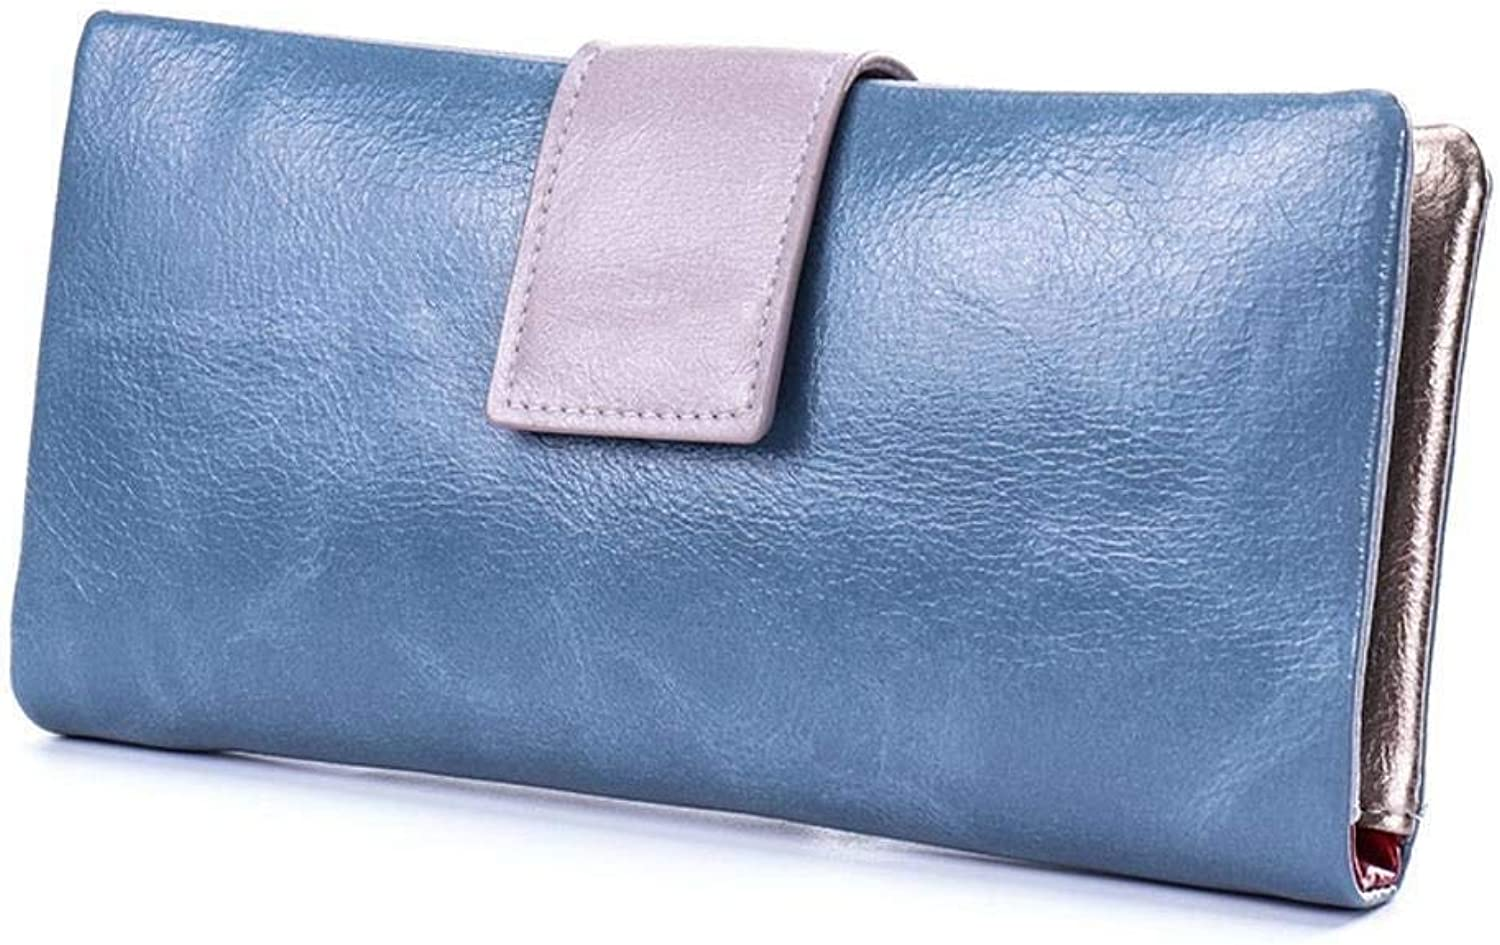 Girls Purse Women's Wallet Lady Purse Multifunctional Mobile Phone Bag Lady MultiCard Small Change Wrap Lady Hand Bag (color   B)